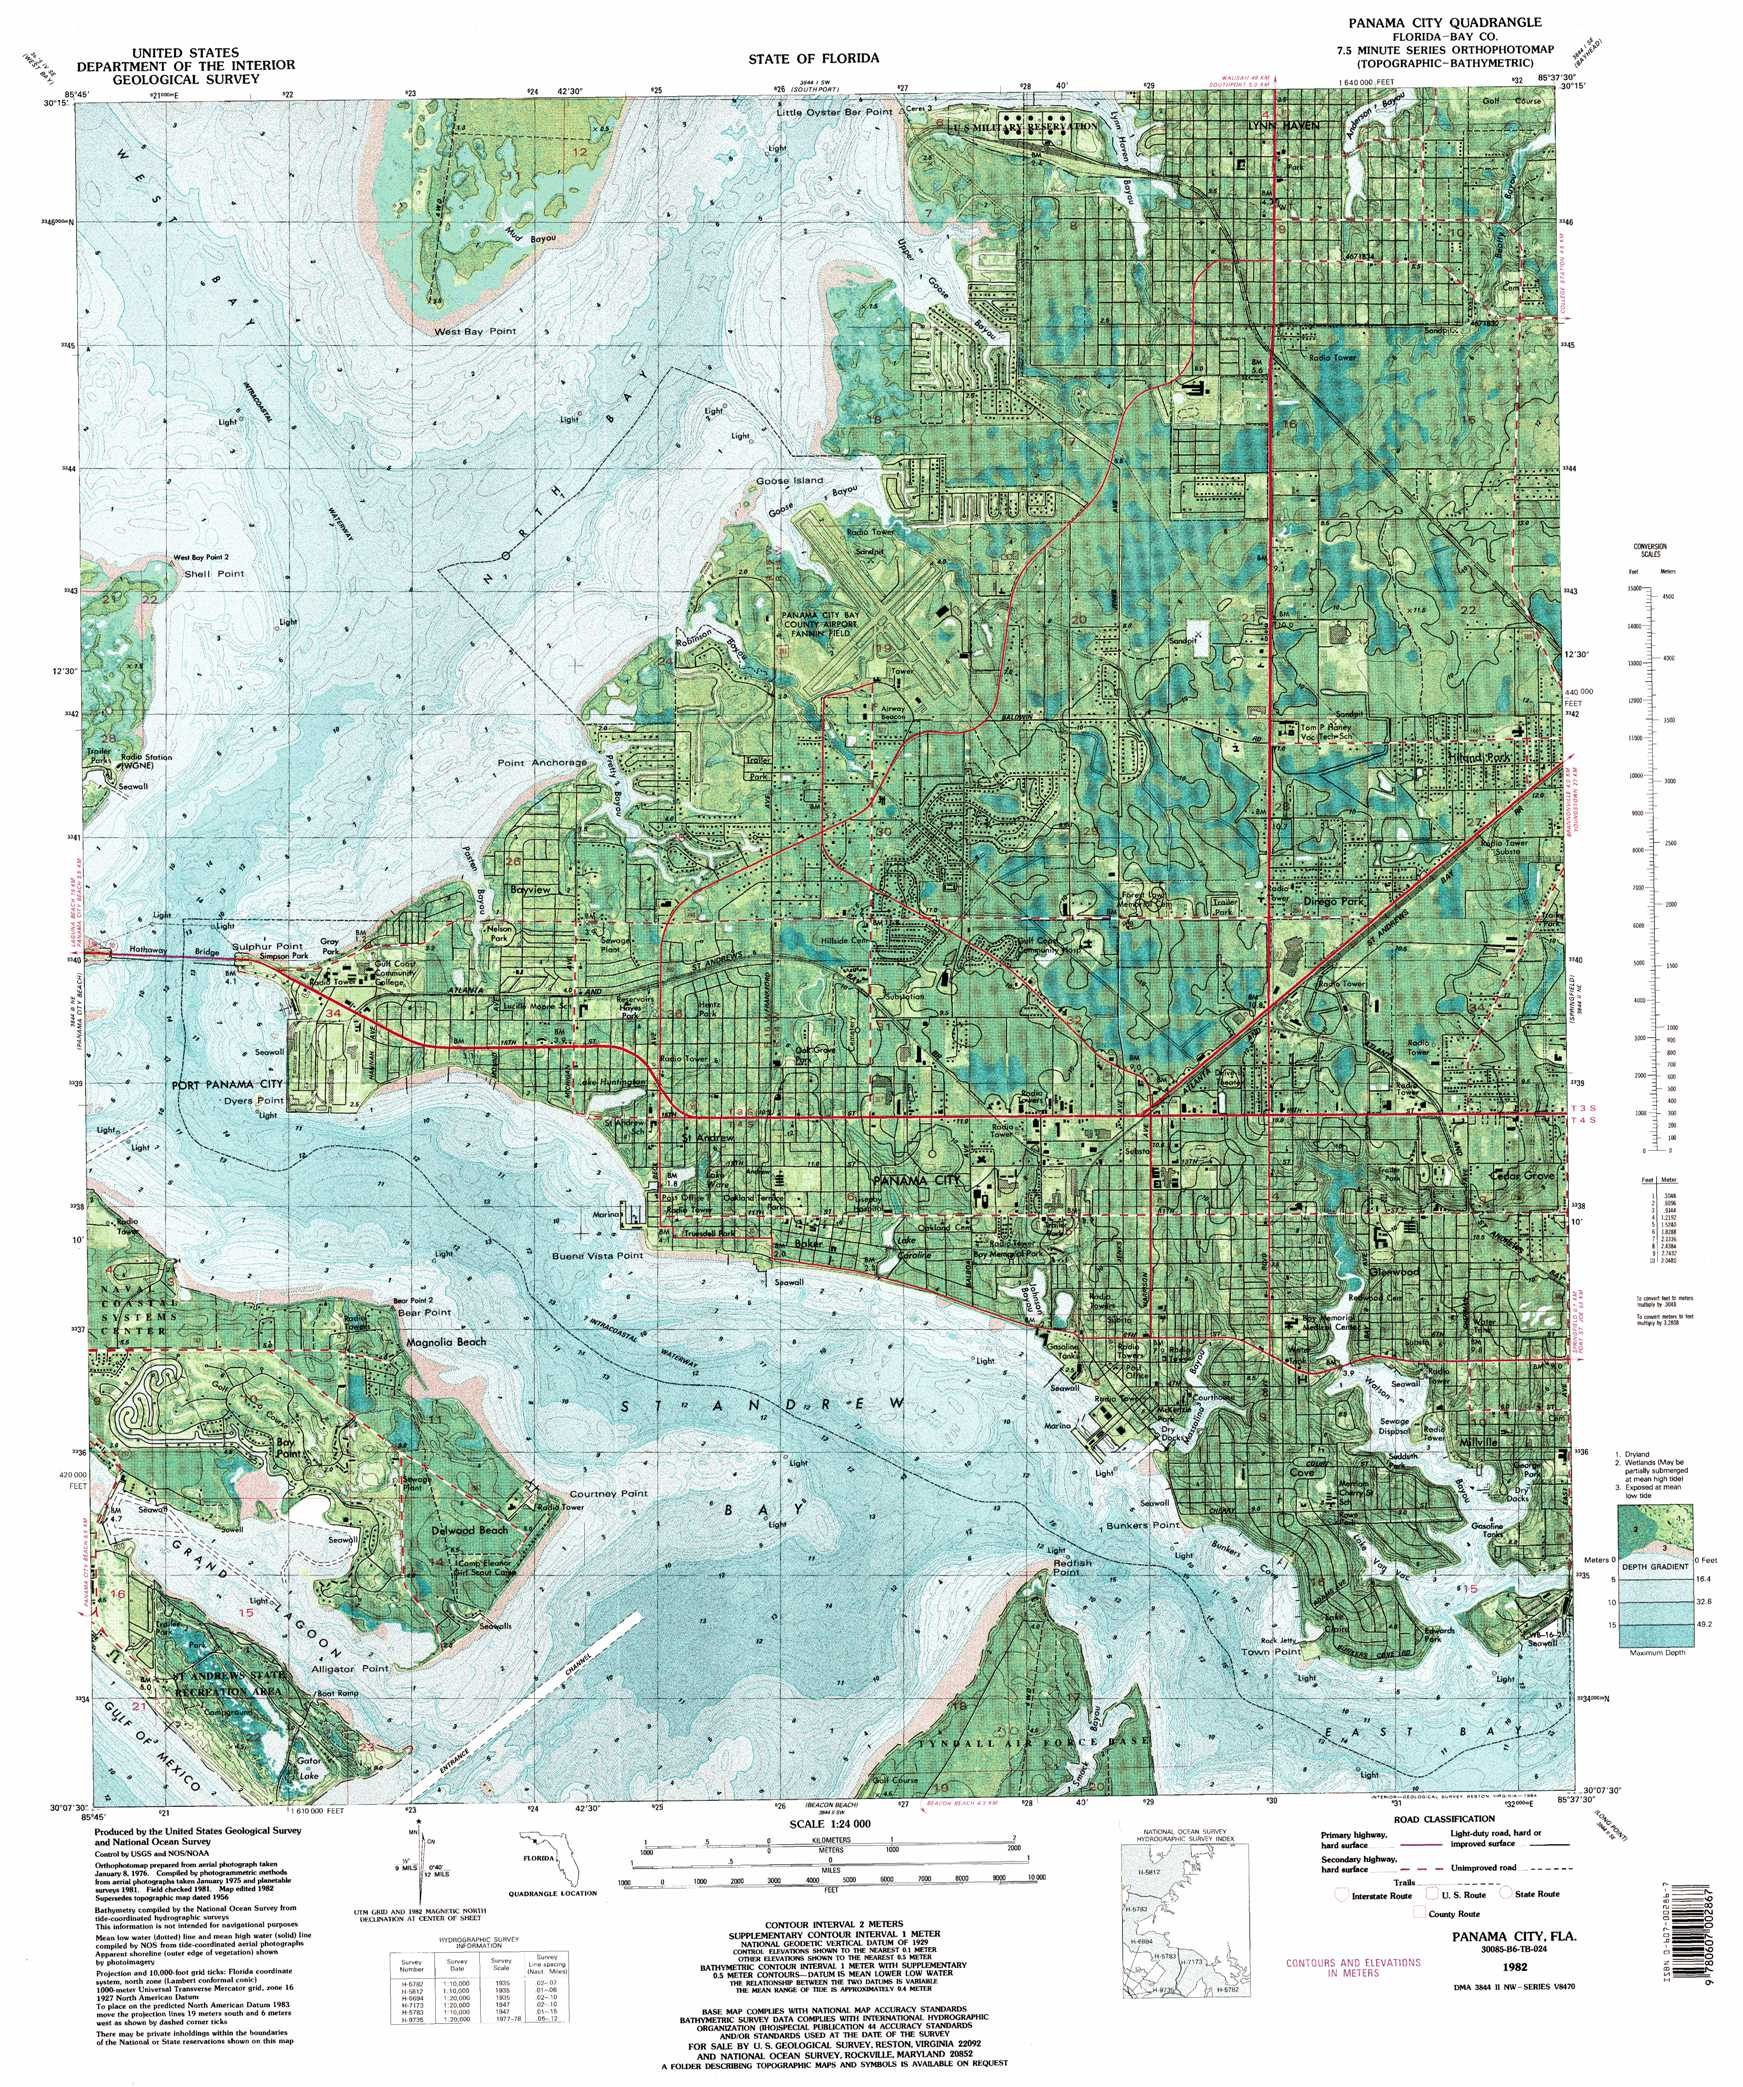 Panama City topographic map, FL - USGS Topo Quad 30085b6